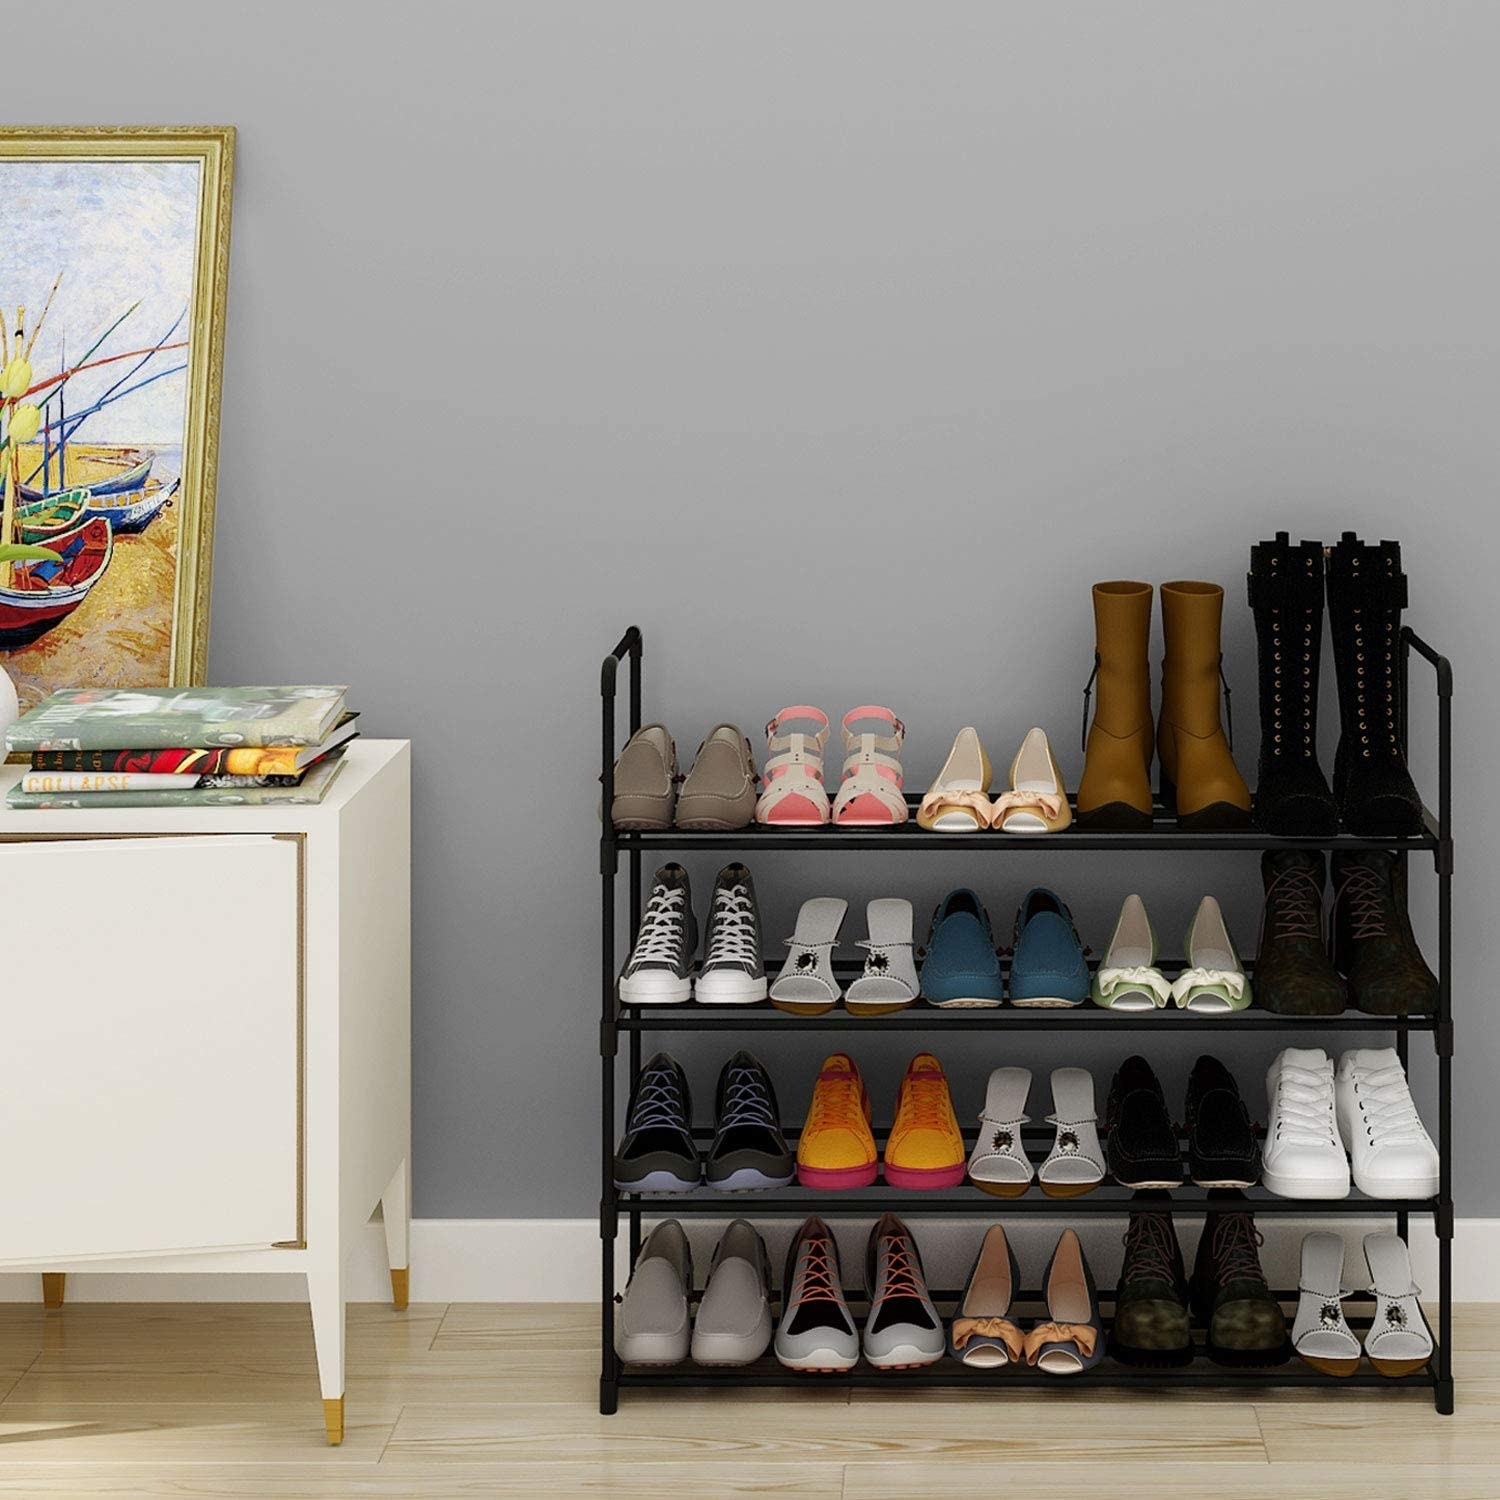 A shoe rack with four tiers and filled with shoes